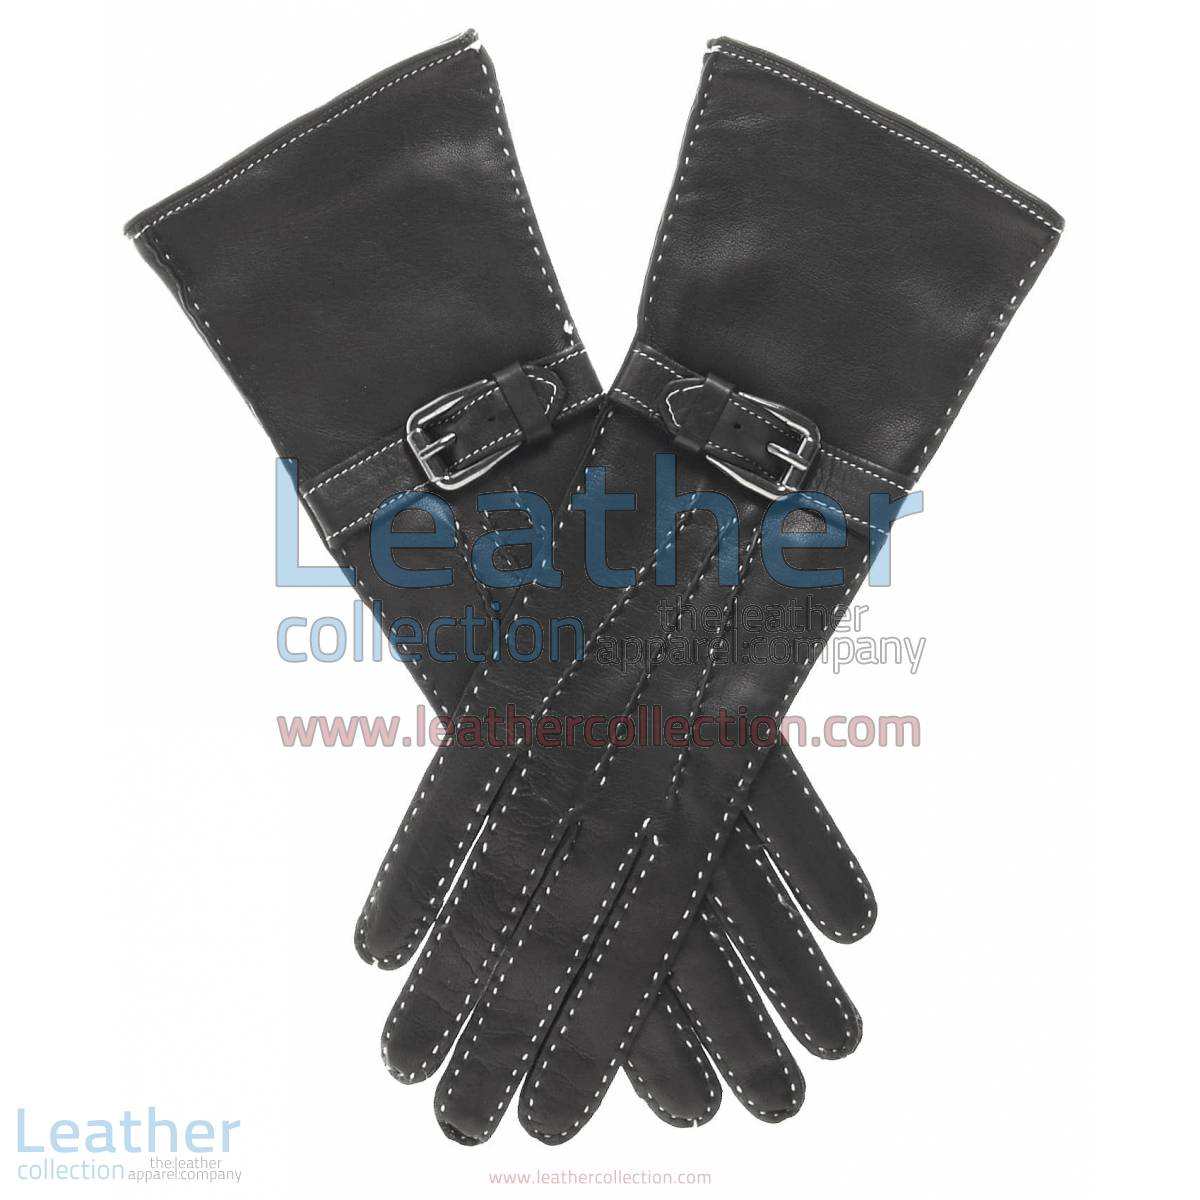 Silk Lined Leather Gloves with Decorative Buckle | leather gloves